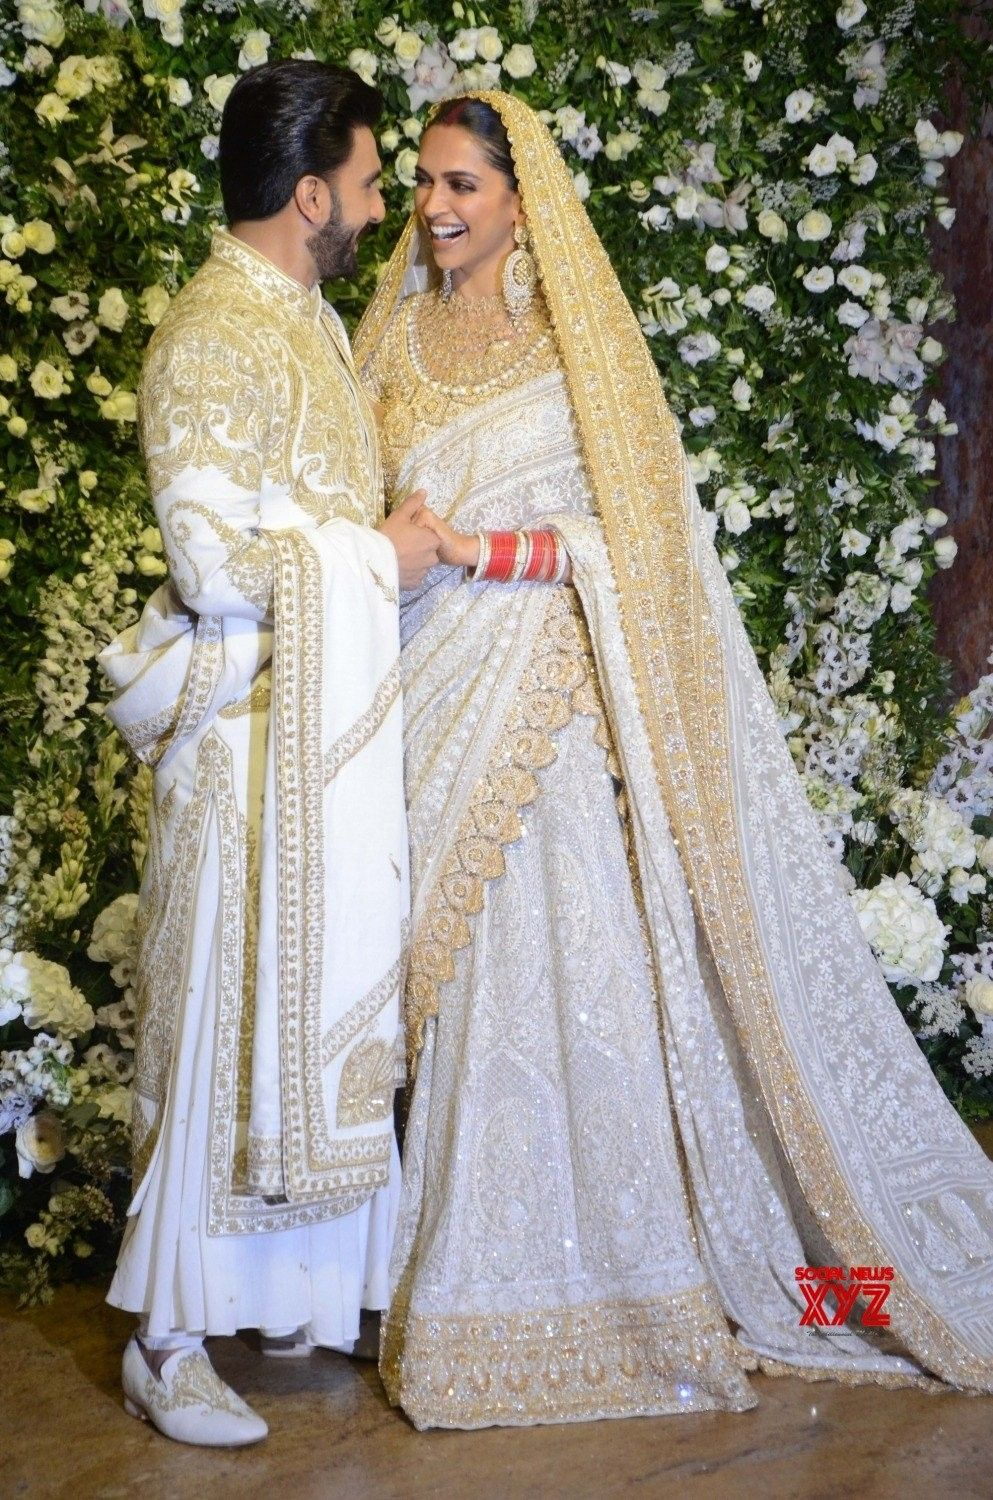 Deepika Padukone With Ranveer Singh Deepveerkishadi Deepveer Indian Bridal Indian Wedding Outfits Desi Wedding Dresses